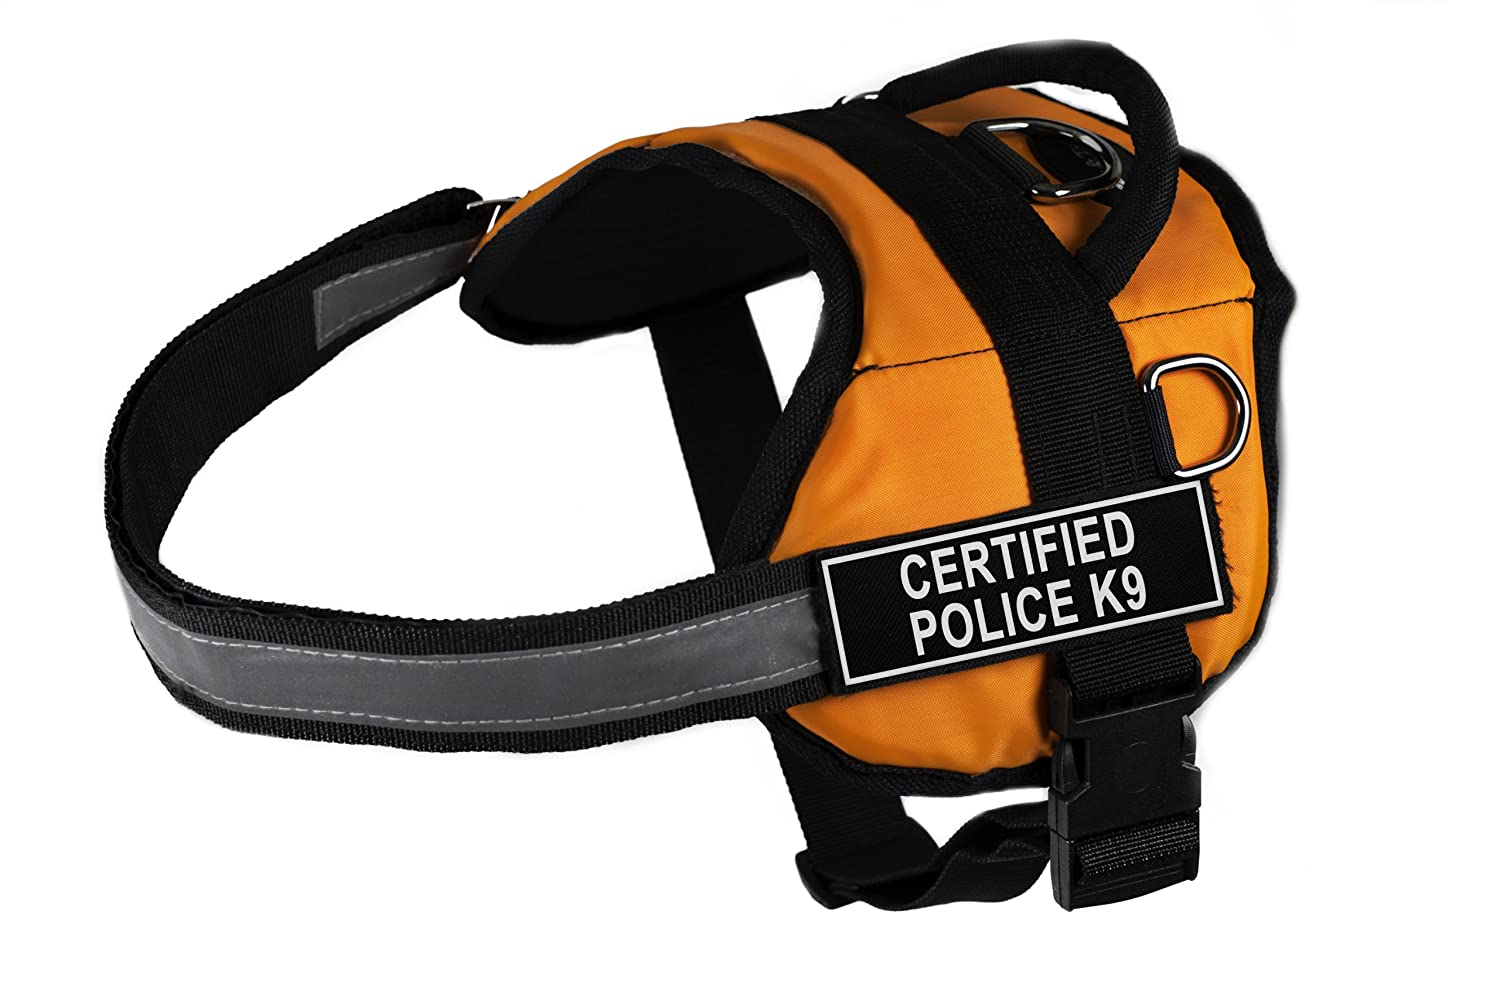 Dean & Tyler DT Works Certified Police K9 Dog Harness, Fits Girth Size 34-Inch to 47-Inch, Large, orange Black